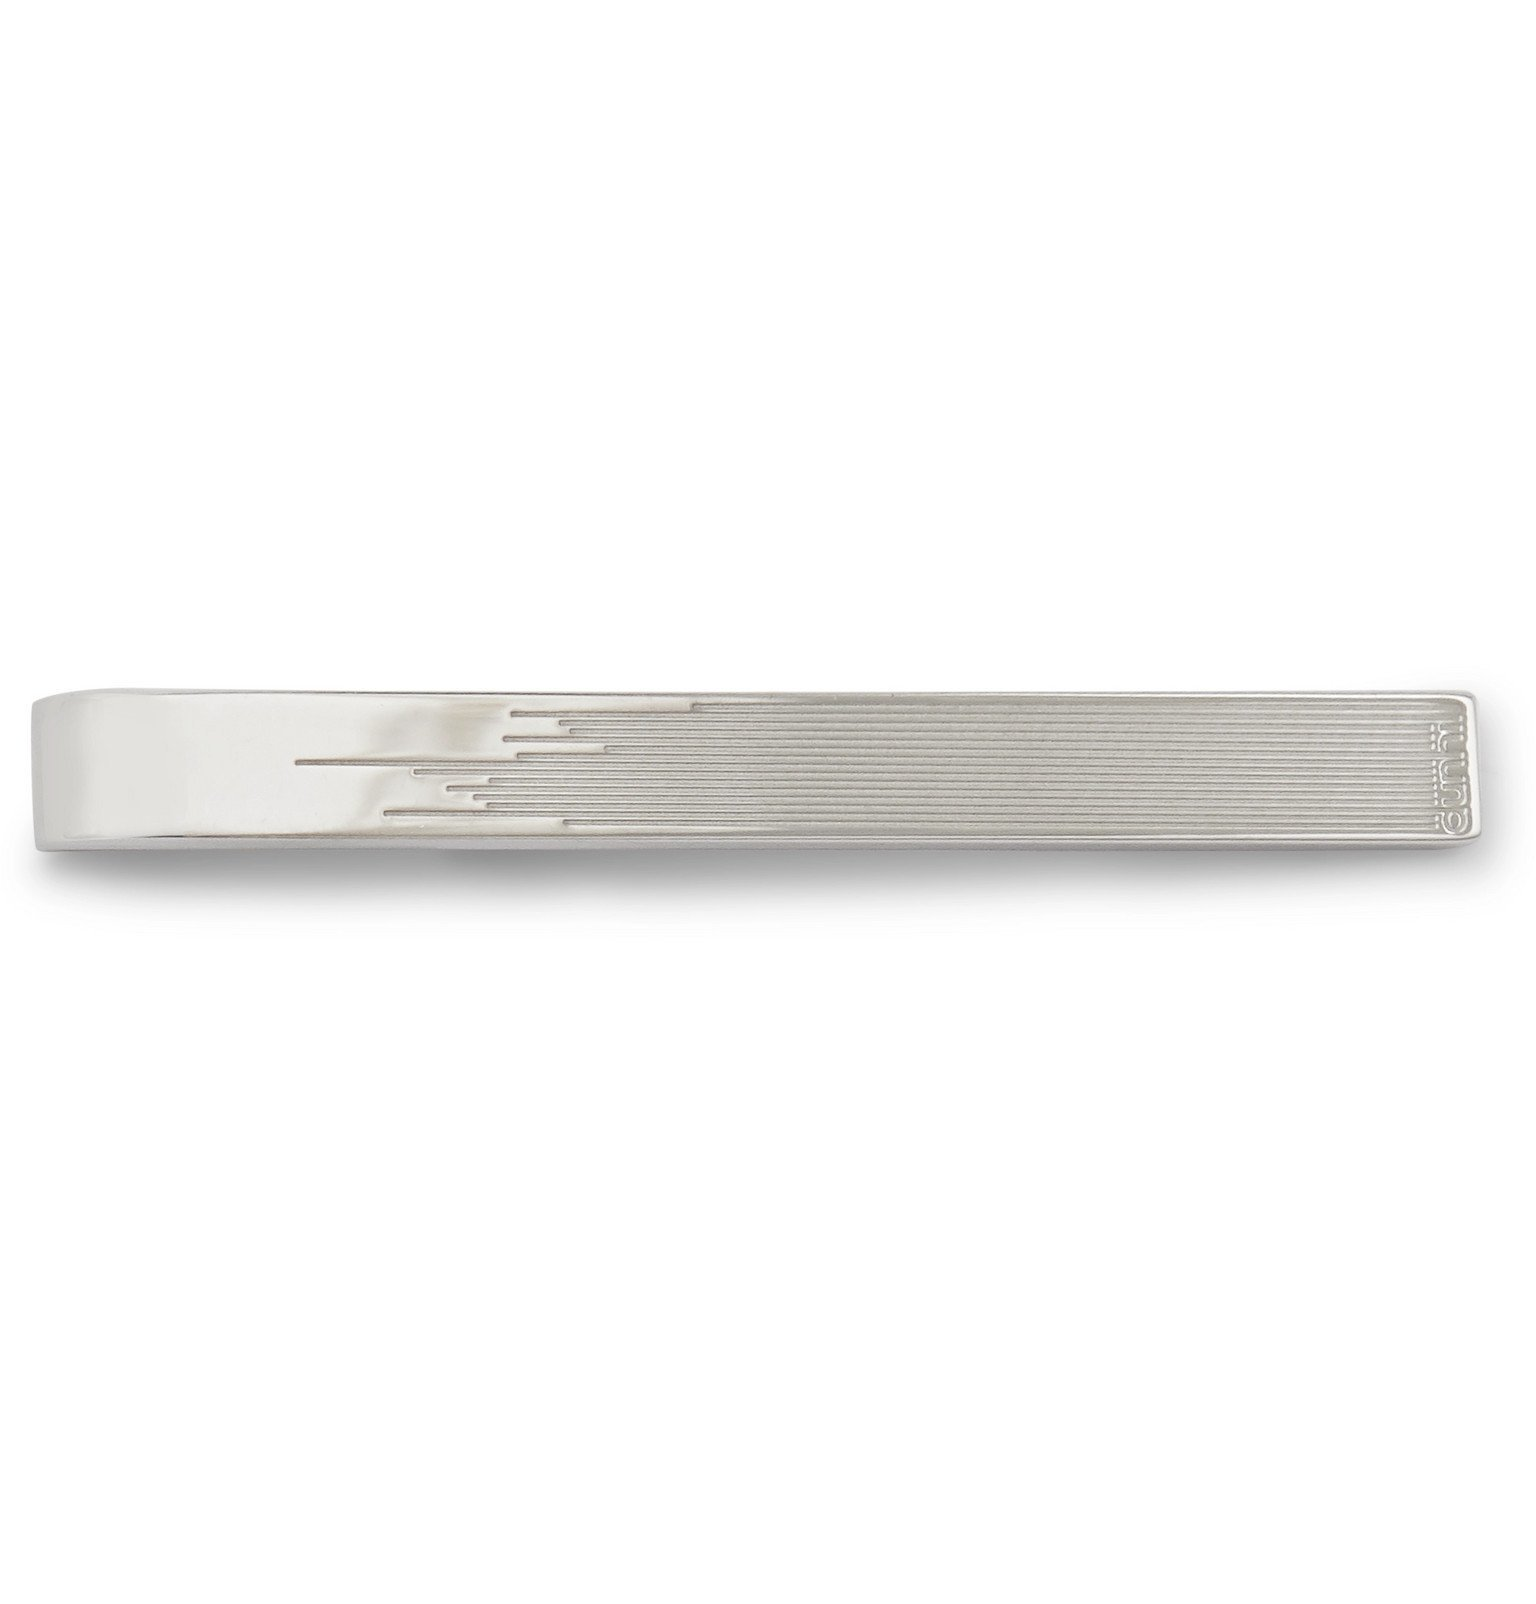 Dunhill - Logo-Engraved Sterling Silver Tie Bar - Silver